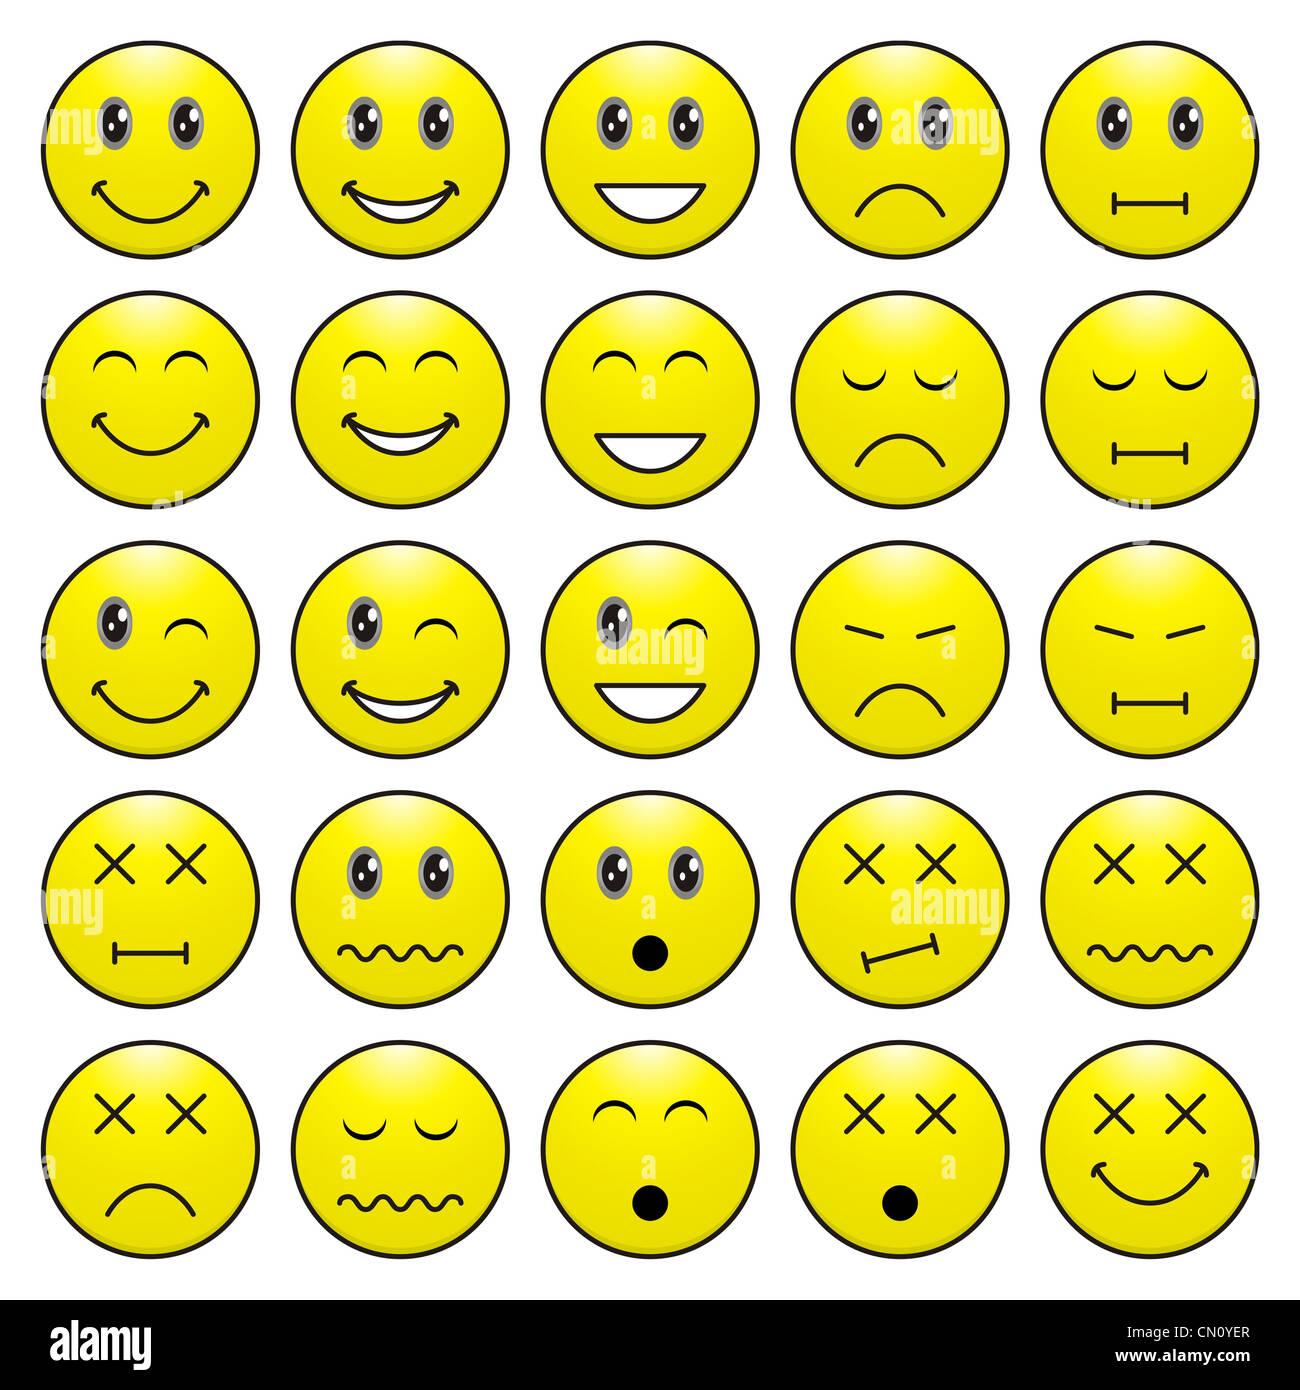 Emoticons High Resolution Stock Photography And Images Alamy